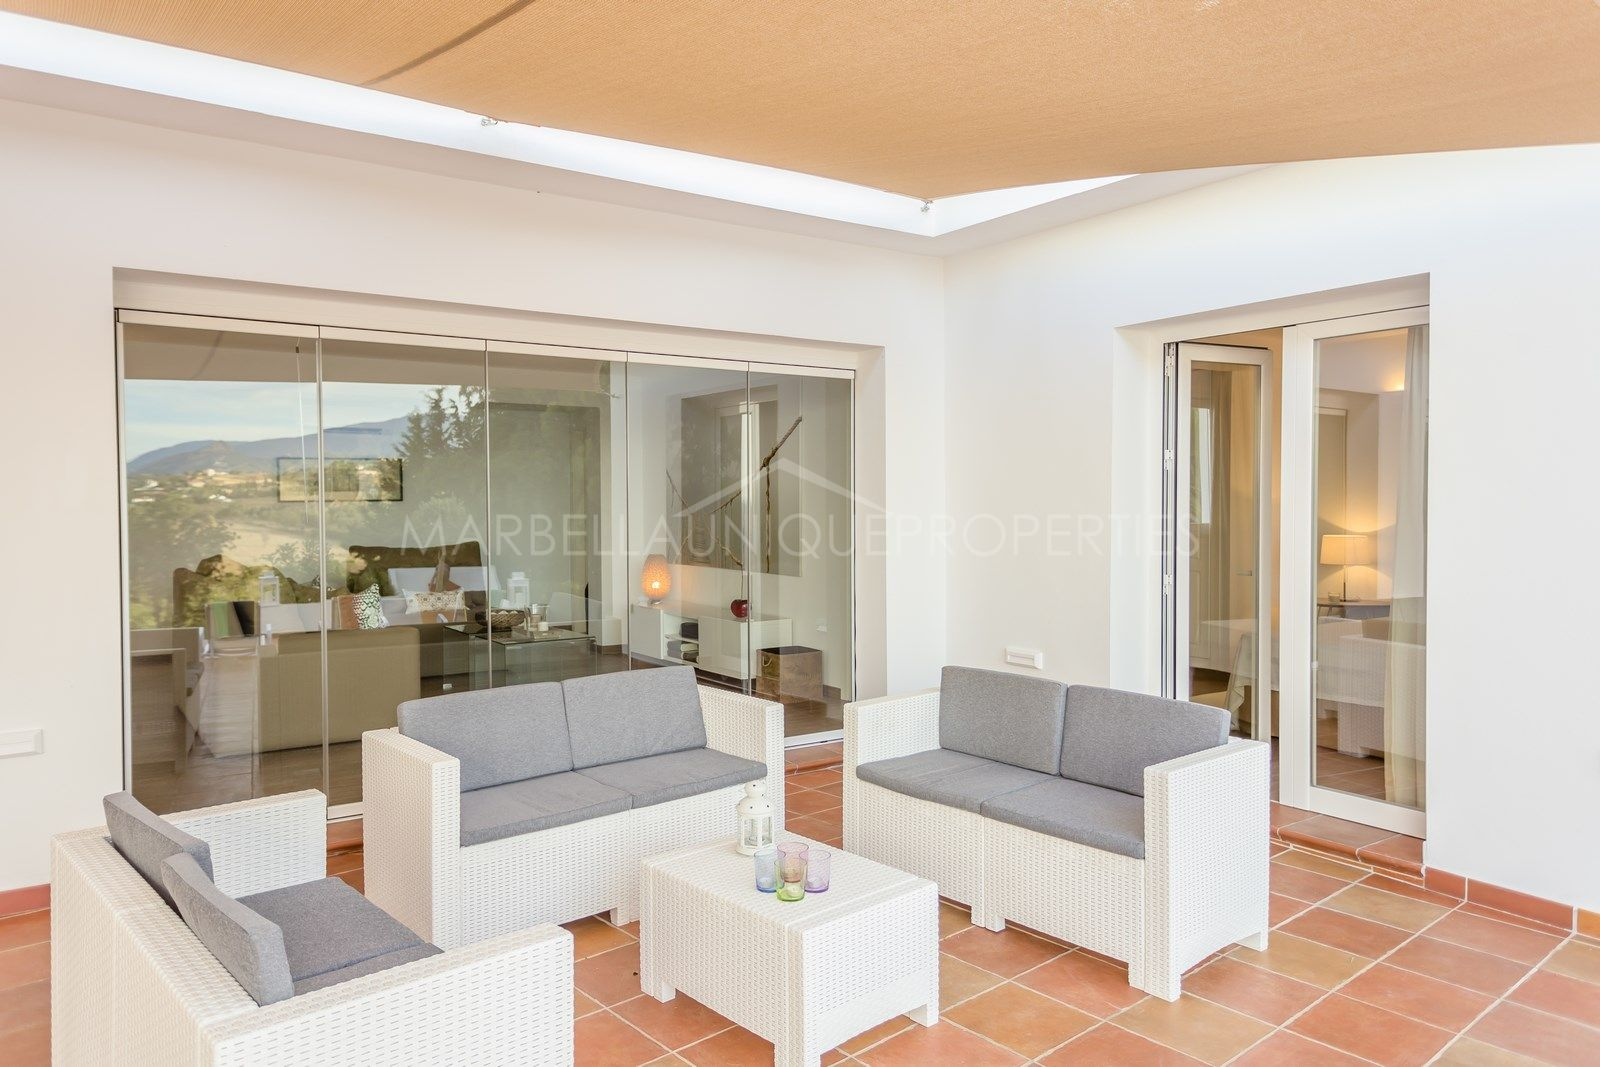 Beautiful typical Andalusian villa for sale in El Padron, Estepona